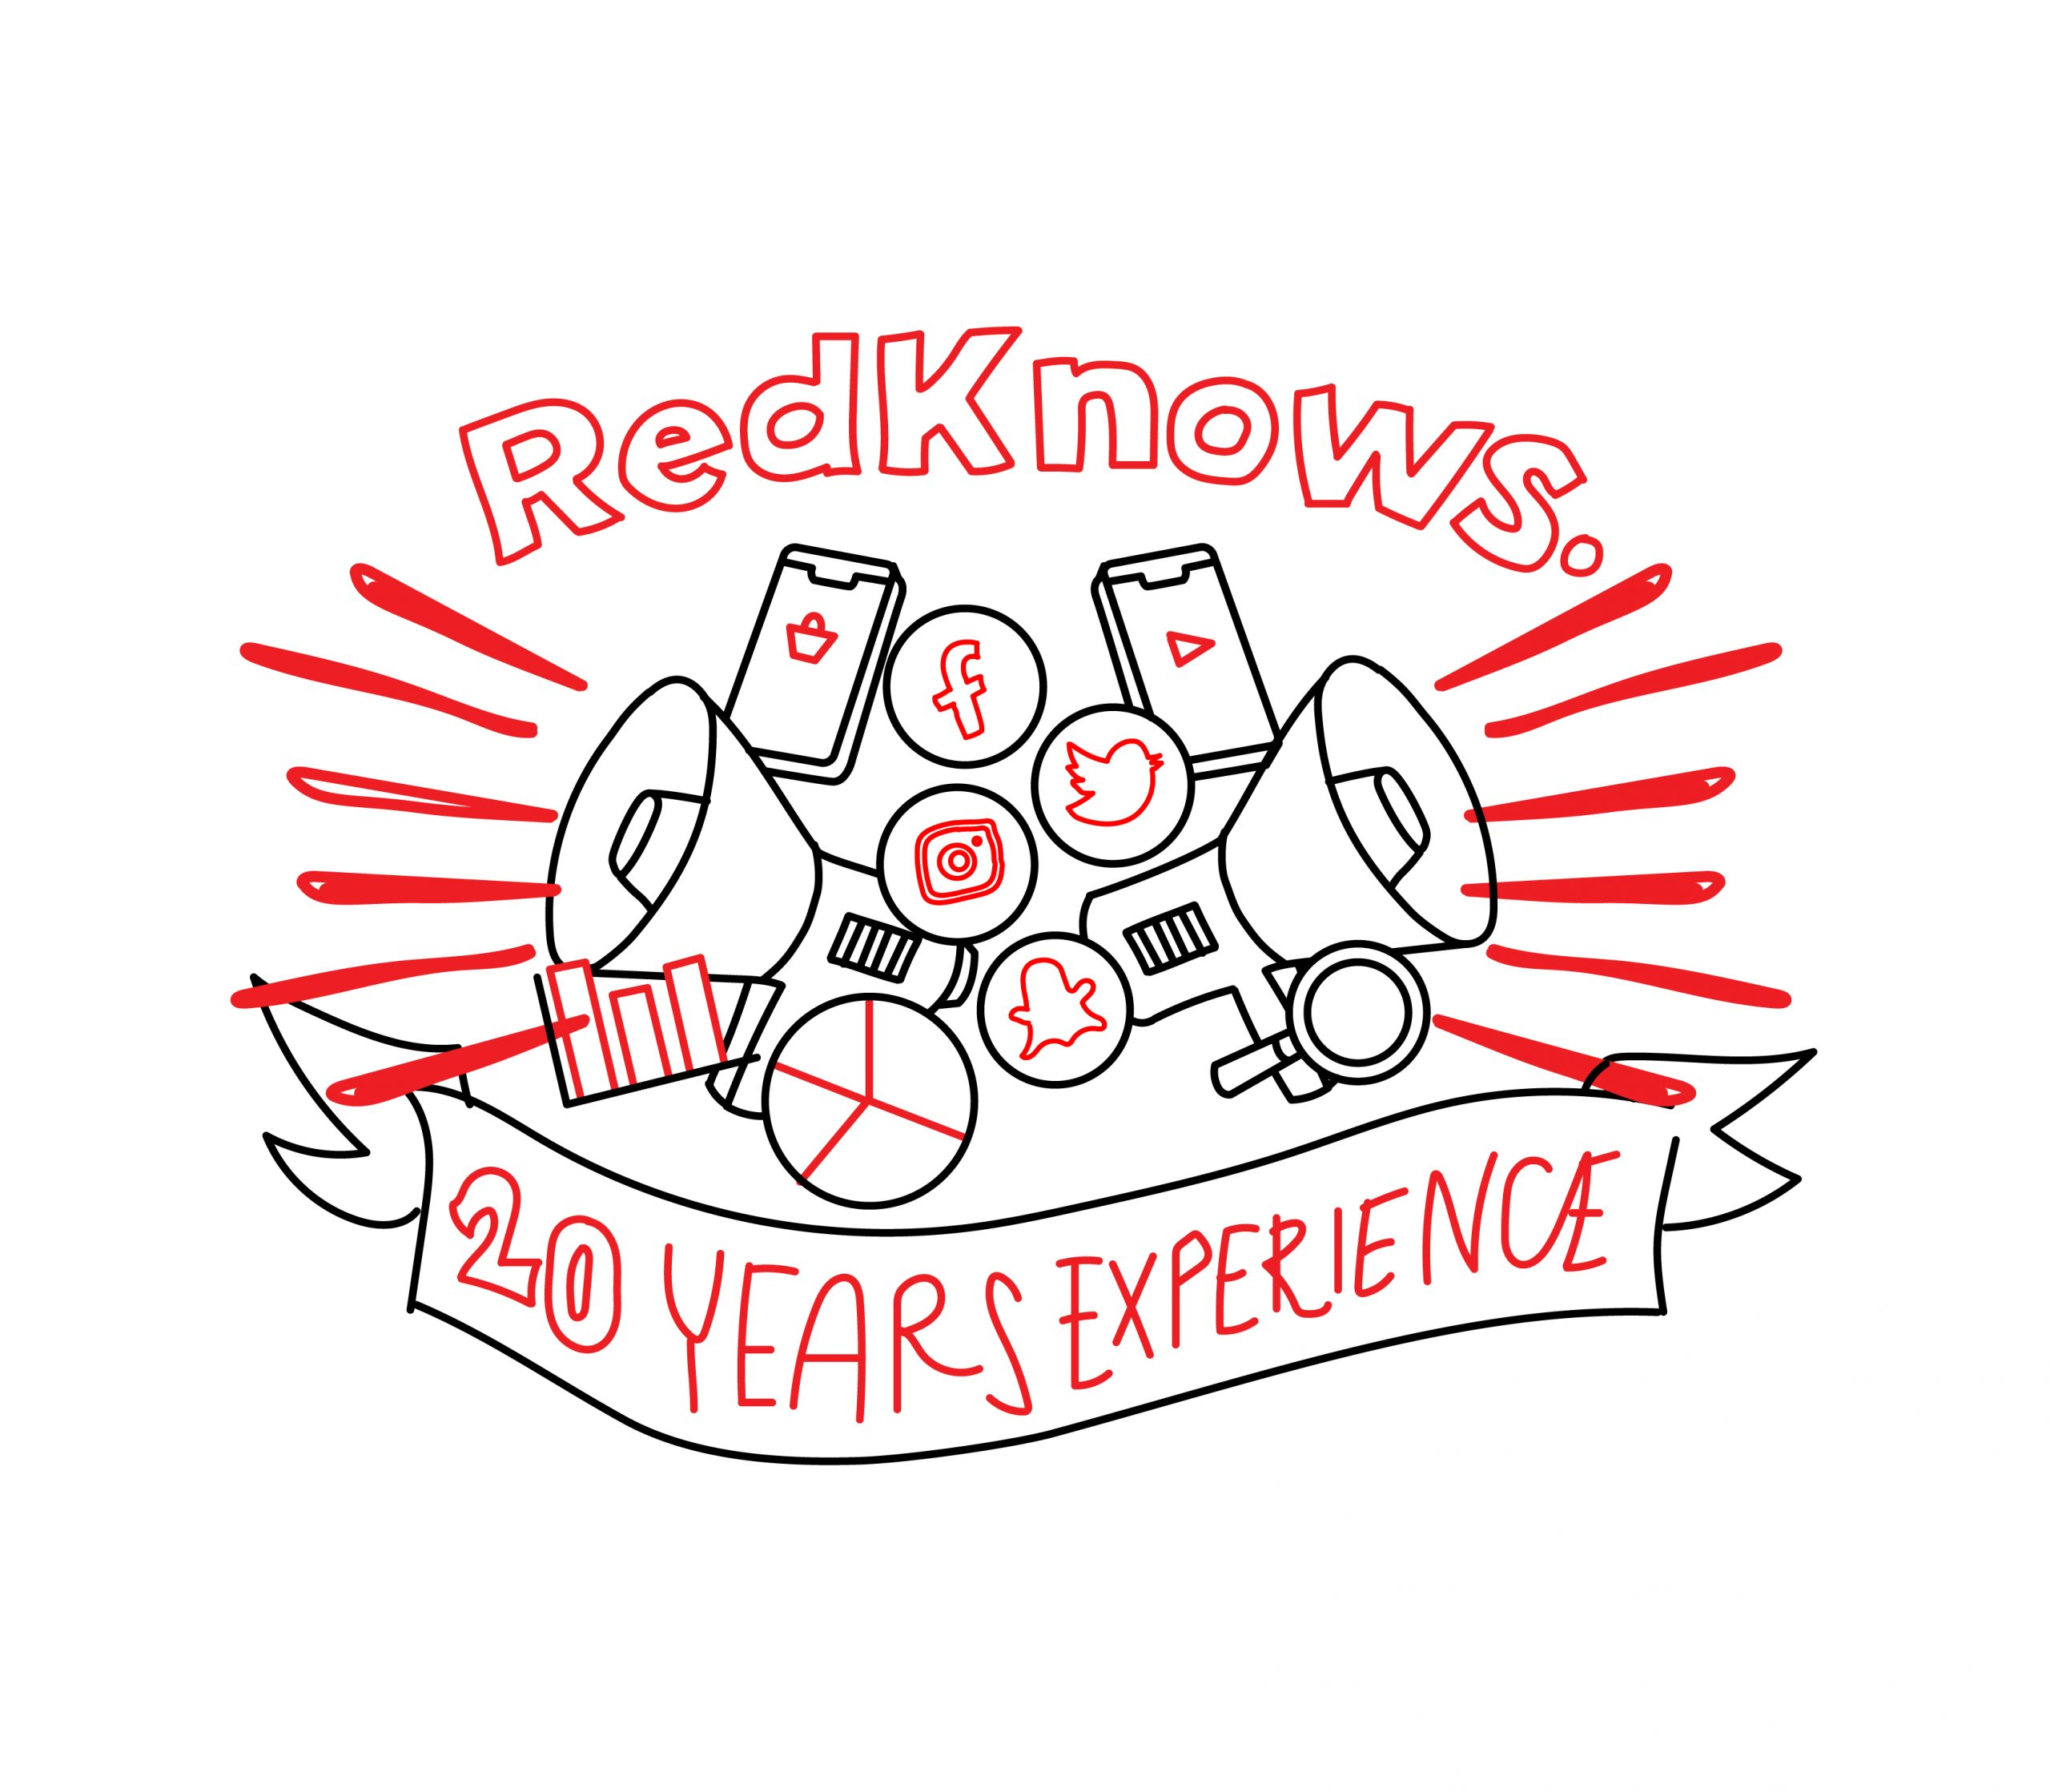 Redknows